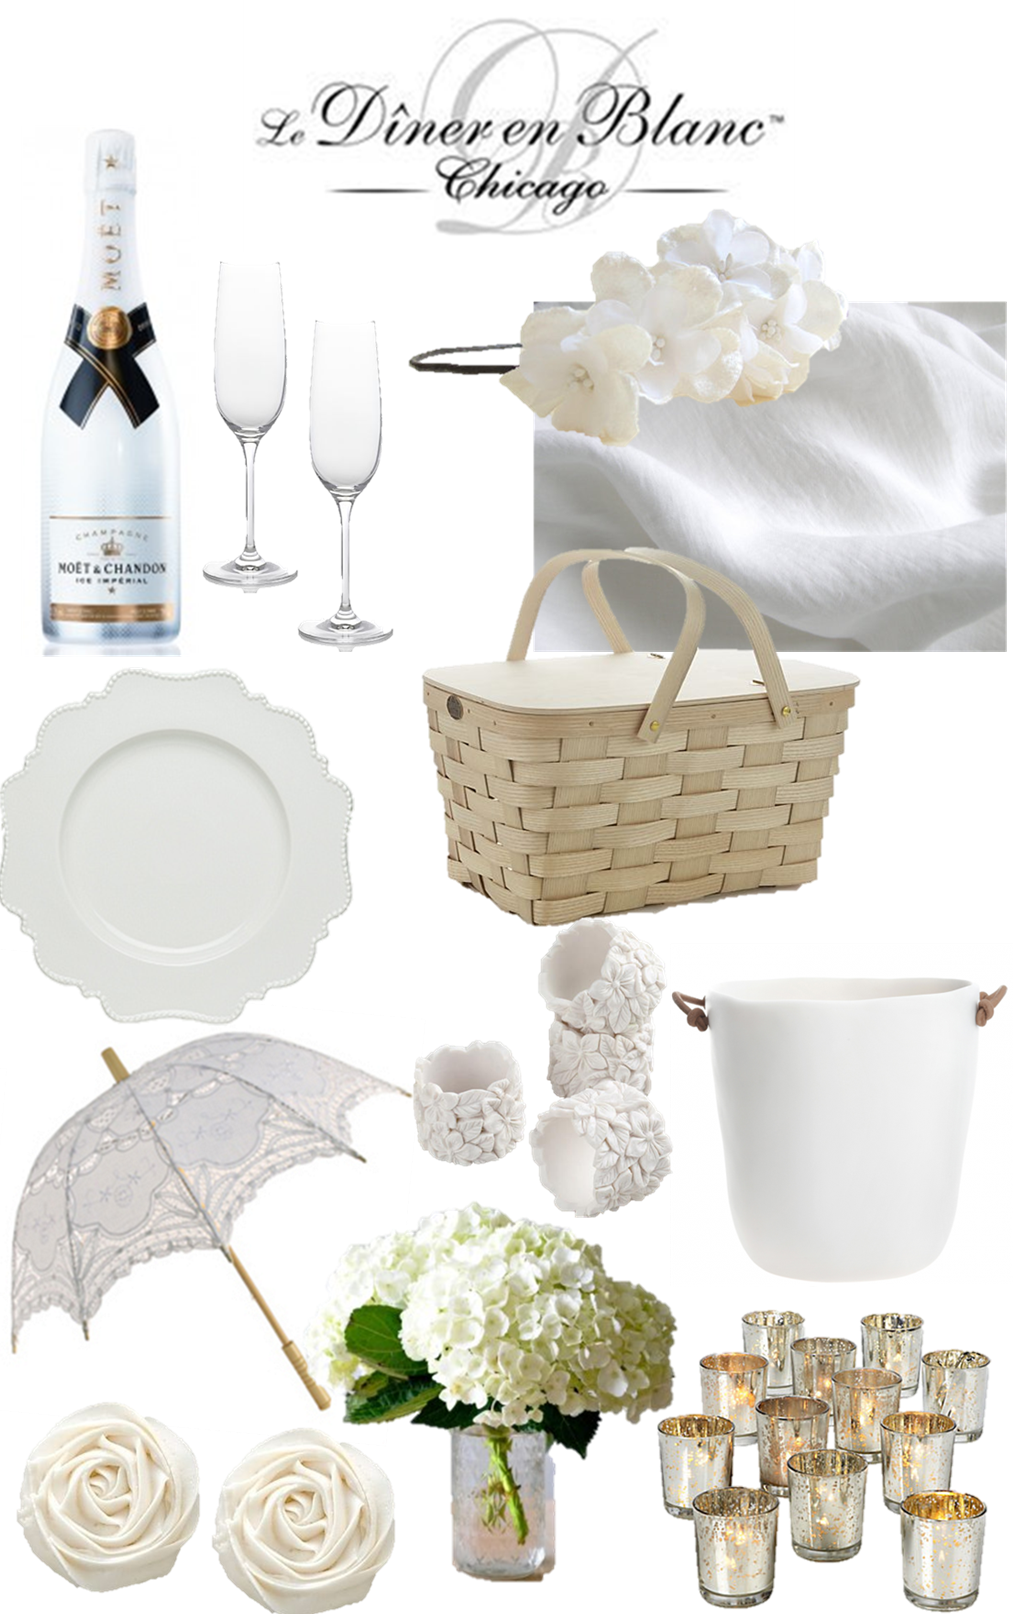 diner en blanc inspiration, white picnic, summer picnic, white party ...